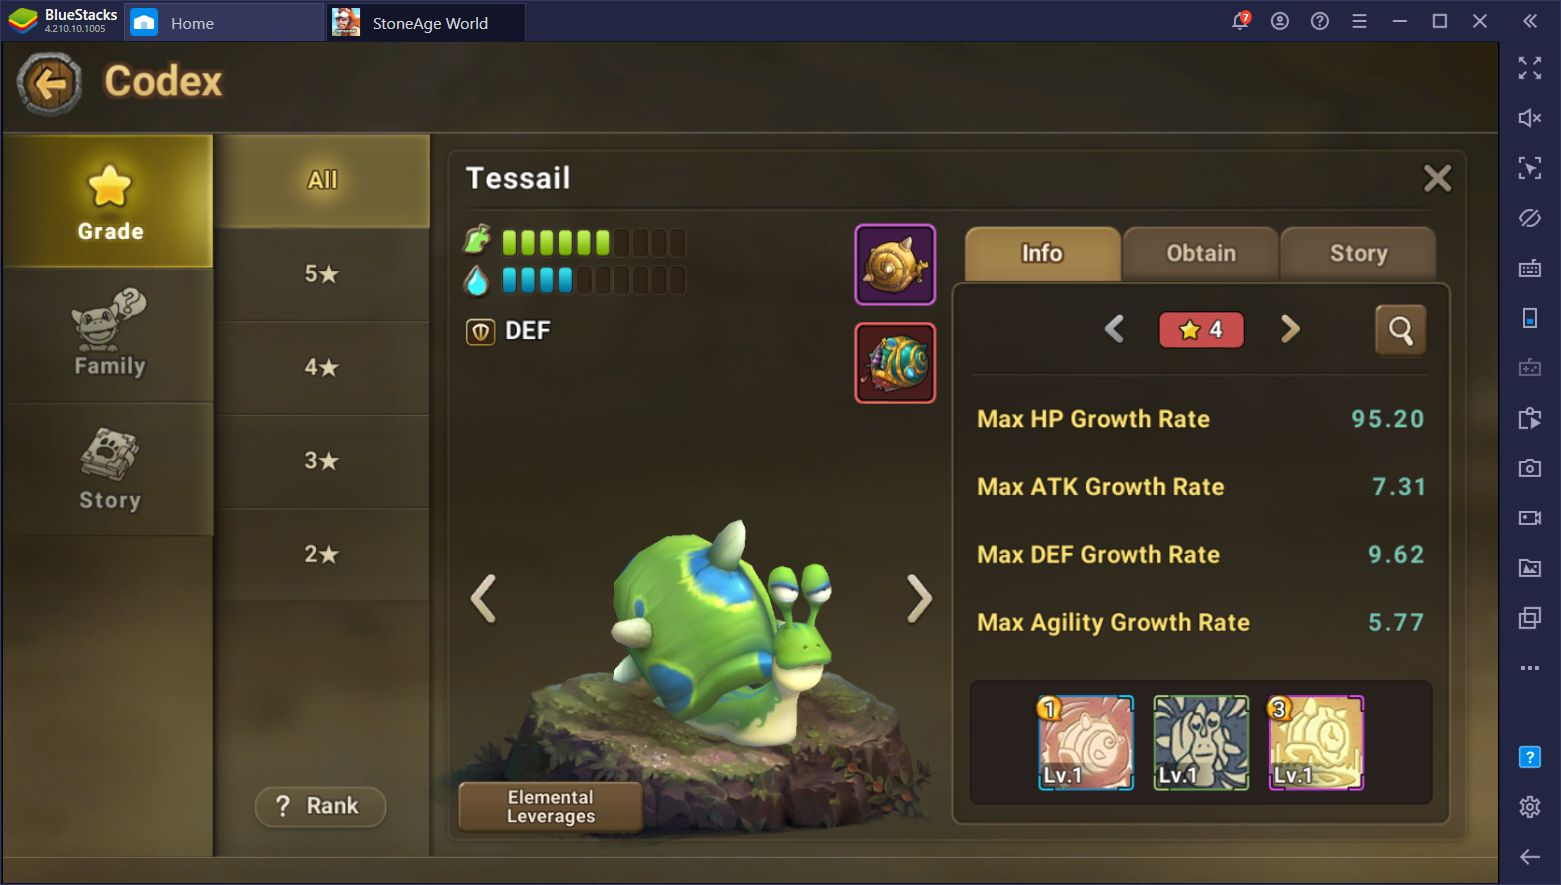 StoneAge World - The Best Pets (and How to Upgrade Them)